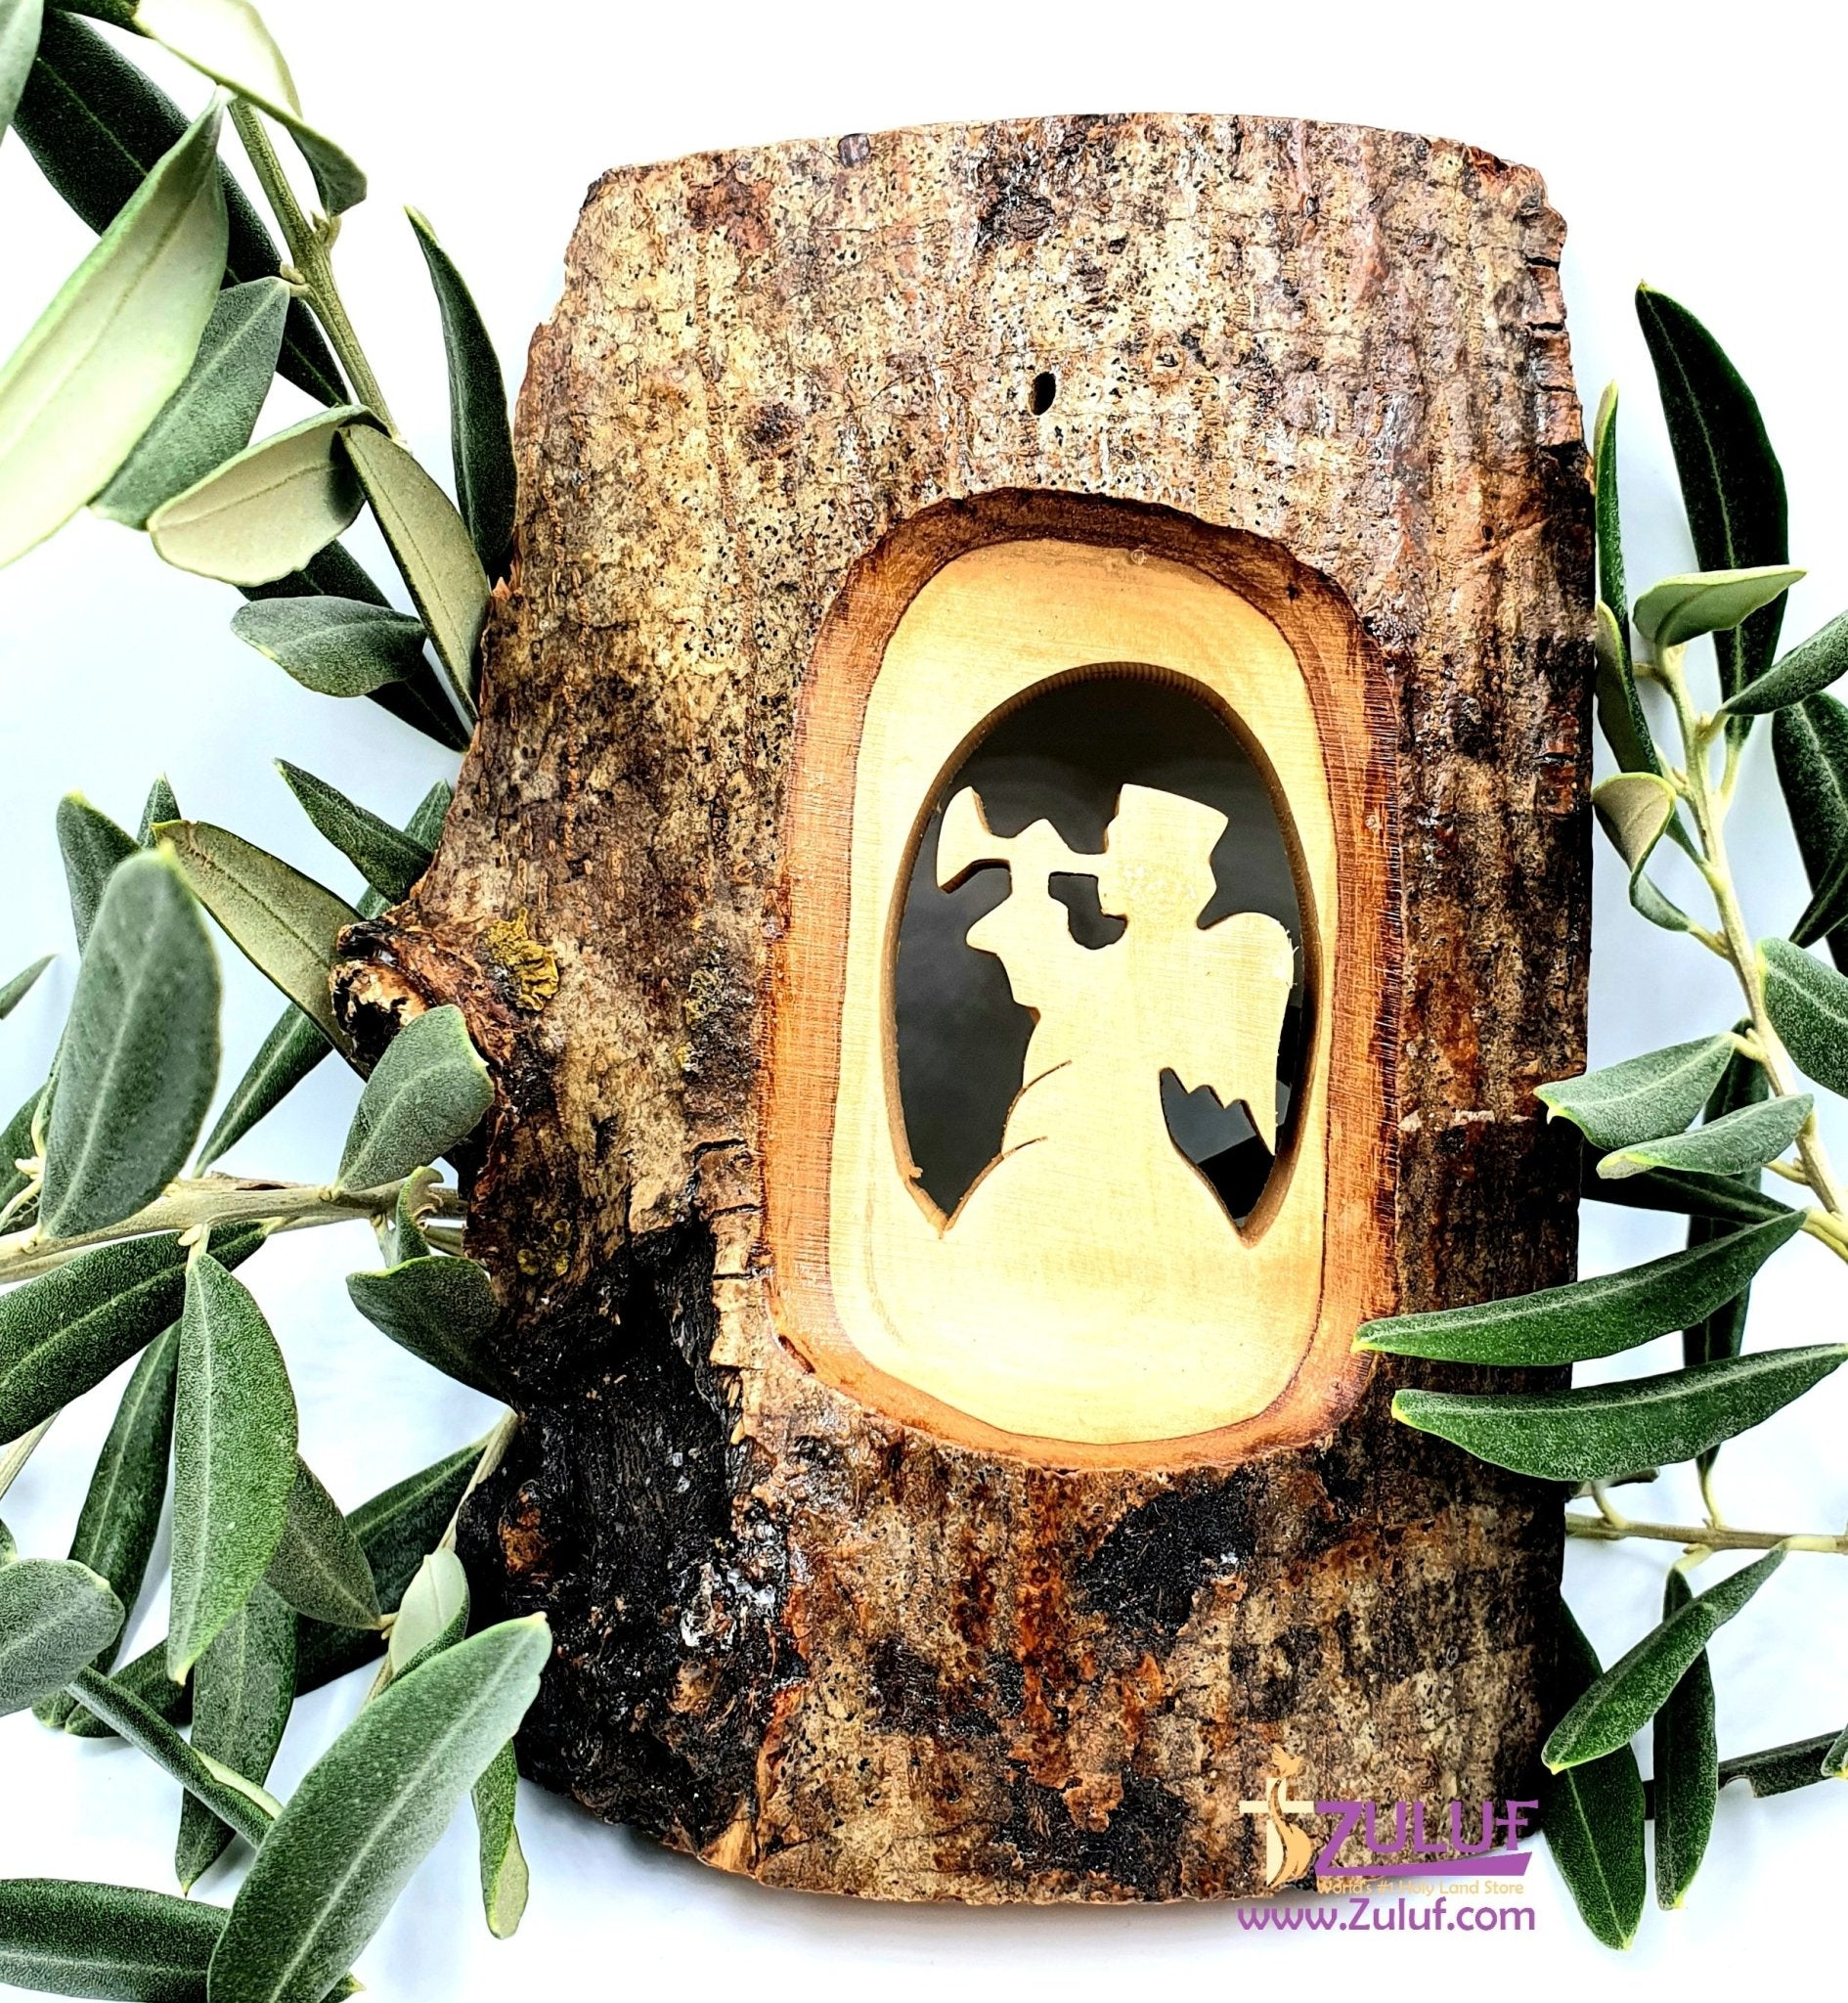 Olive Wood Natural Bark Décor Christmas Gift Angel Olive Wood Product Zuluf- HLG007 - Zuluf